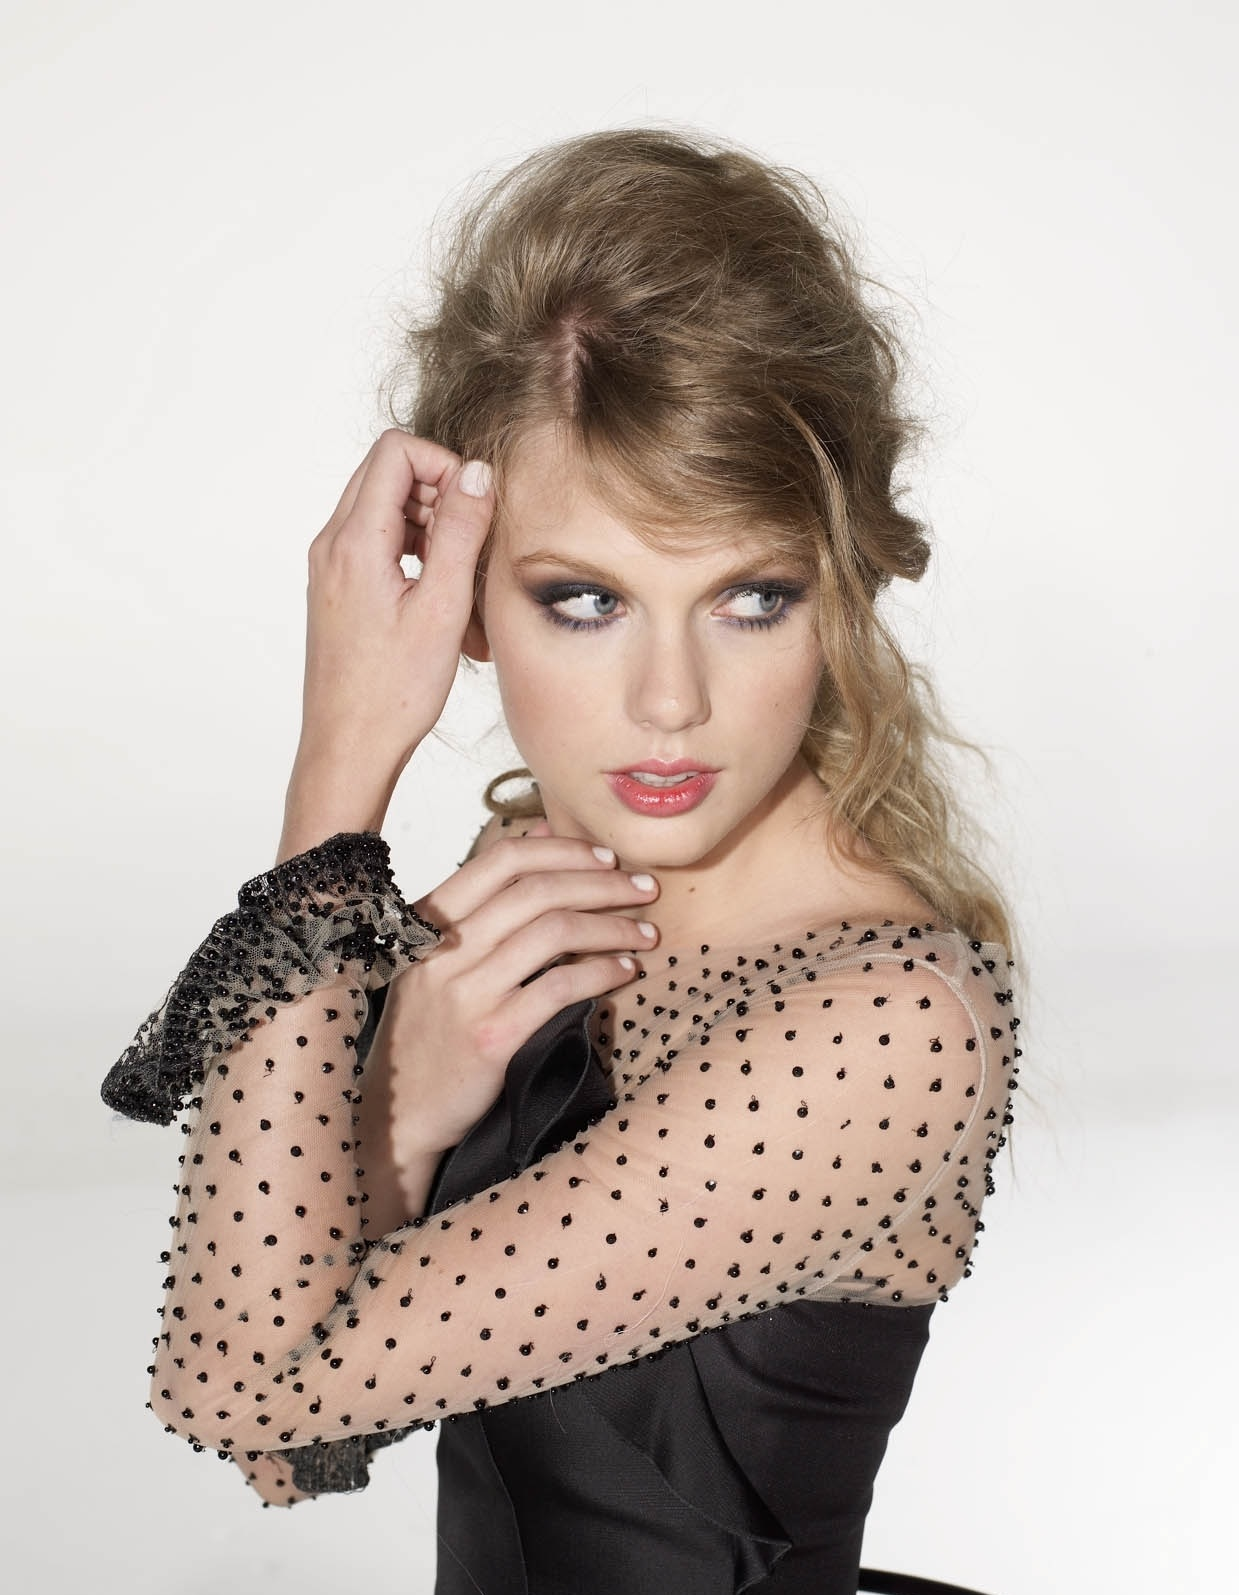 Taylor Swift Wallpapers High Quality Download Free